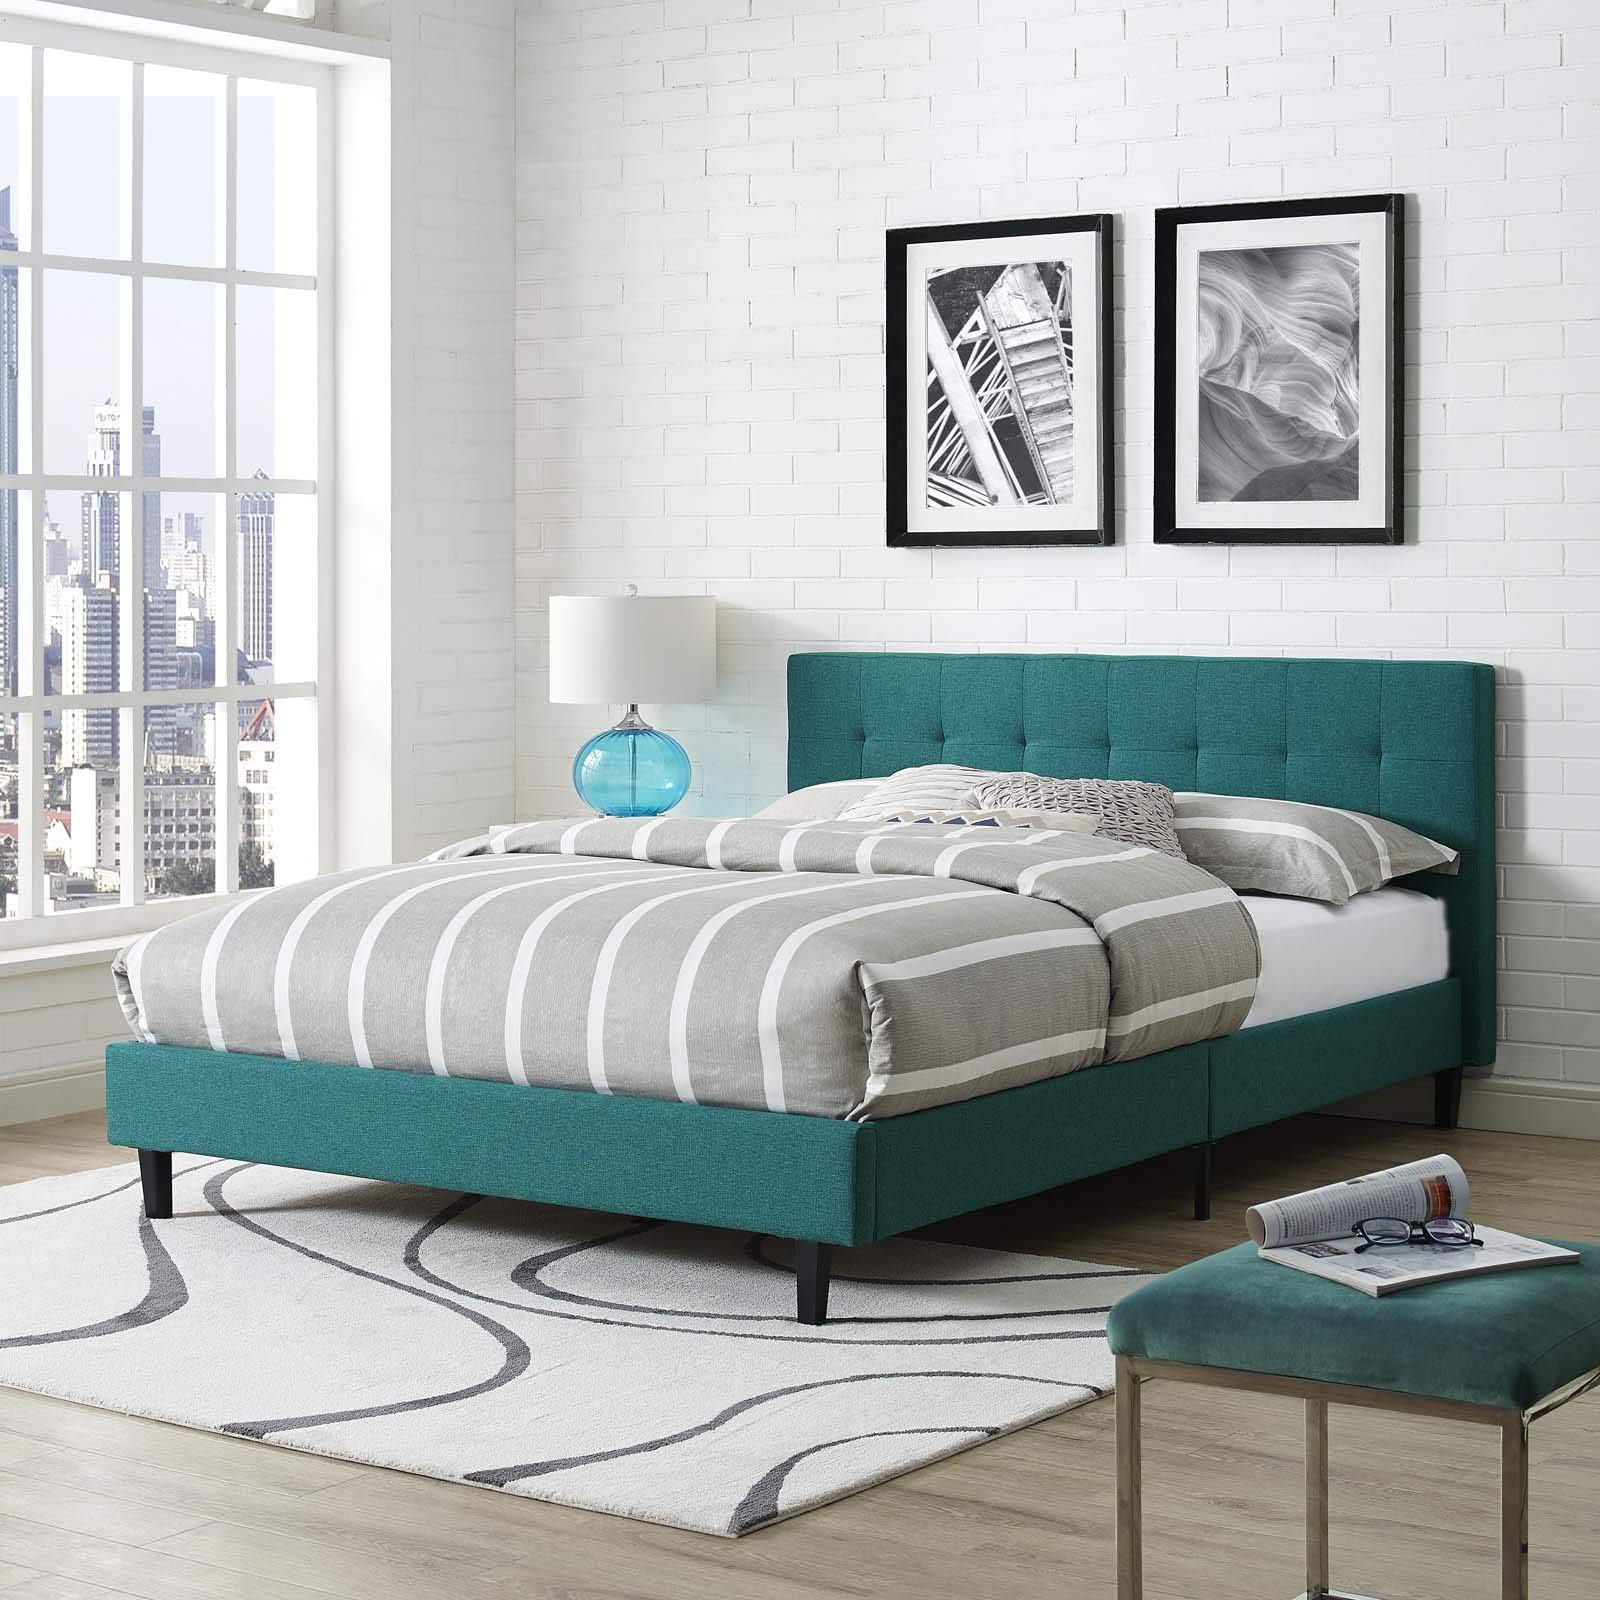 Modway Linnea Upholstered Teal Platform Bed with Wood Slat Support in Full by Modway